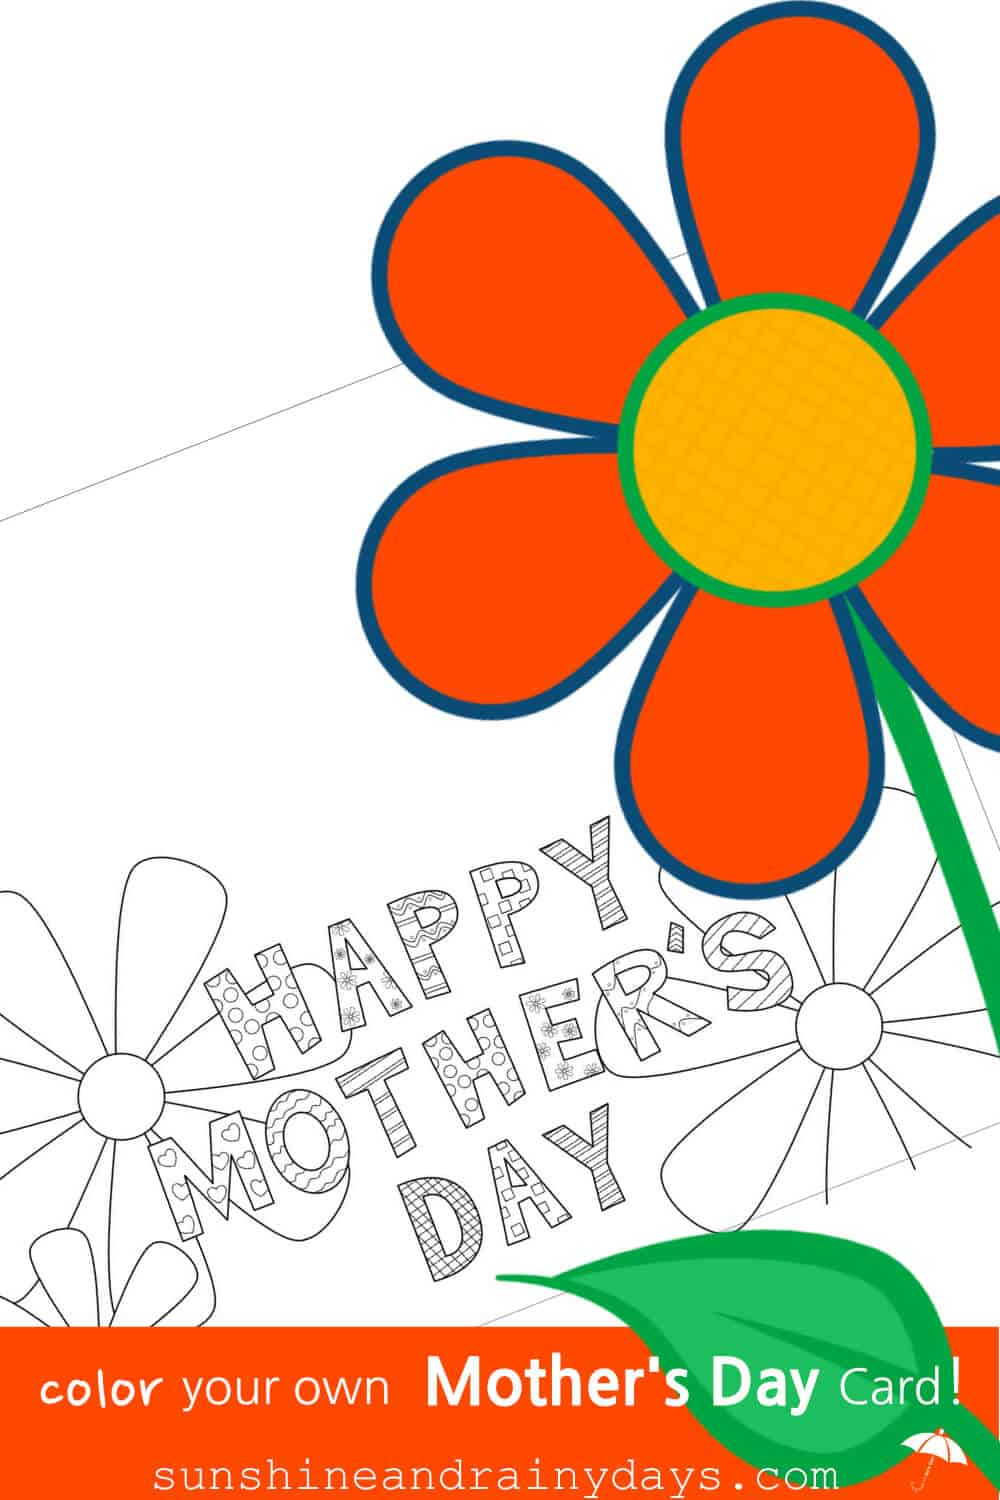 Mother's Day is the perfect opportunity to show your creative side with a Mother's Day Coloring Card! Color pages are all the rage no matter your age so why not color a card for the mom in your life? It's FUN, it's easy, it's part homemade, and Mom will LOVE it! #MothersDay #Mothersdaycard #SARD #sunshineandrainydays